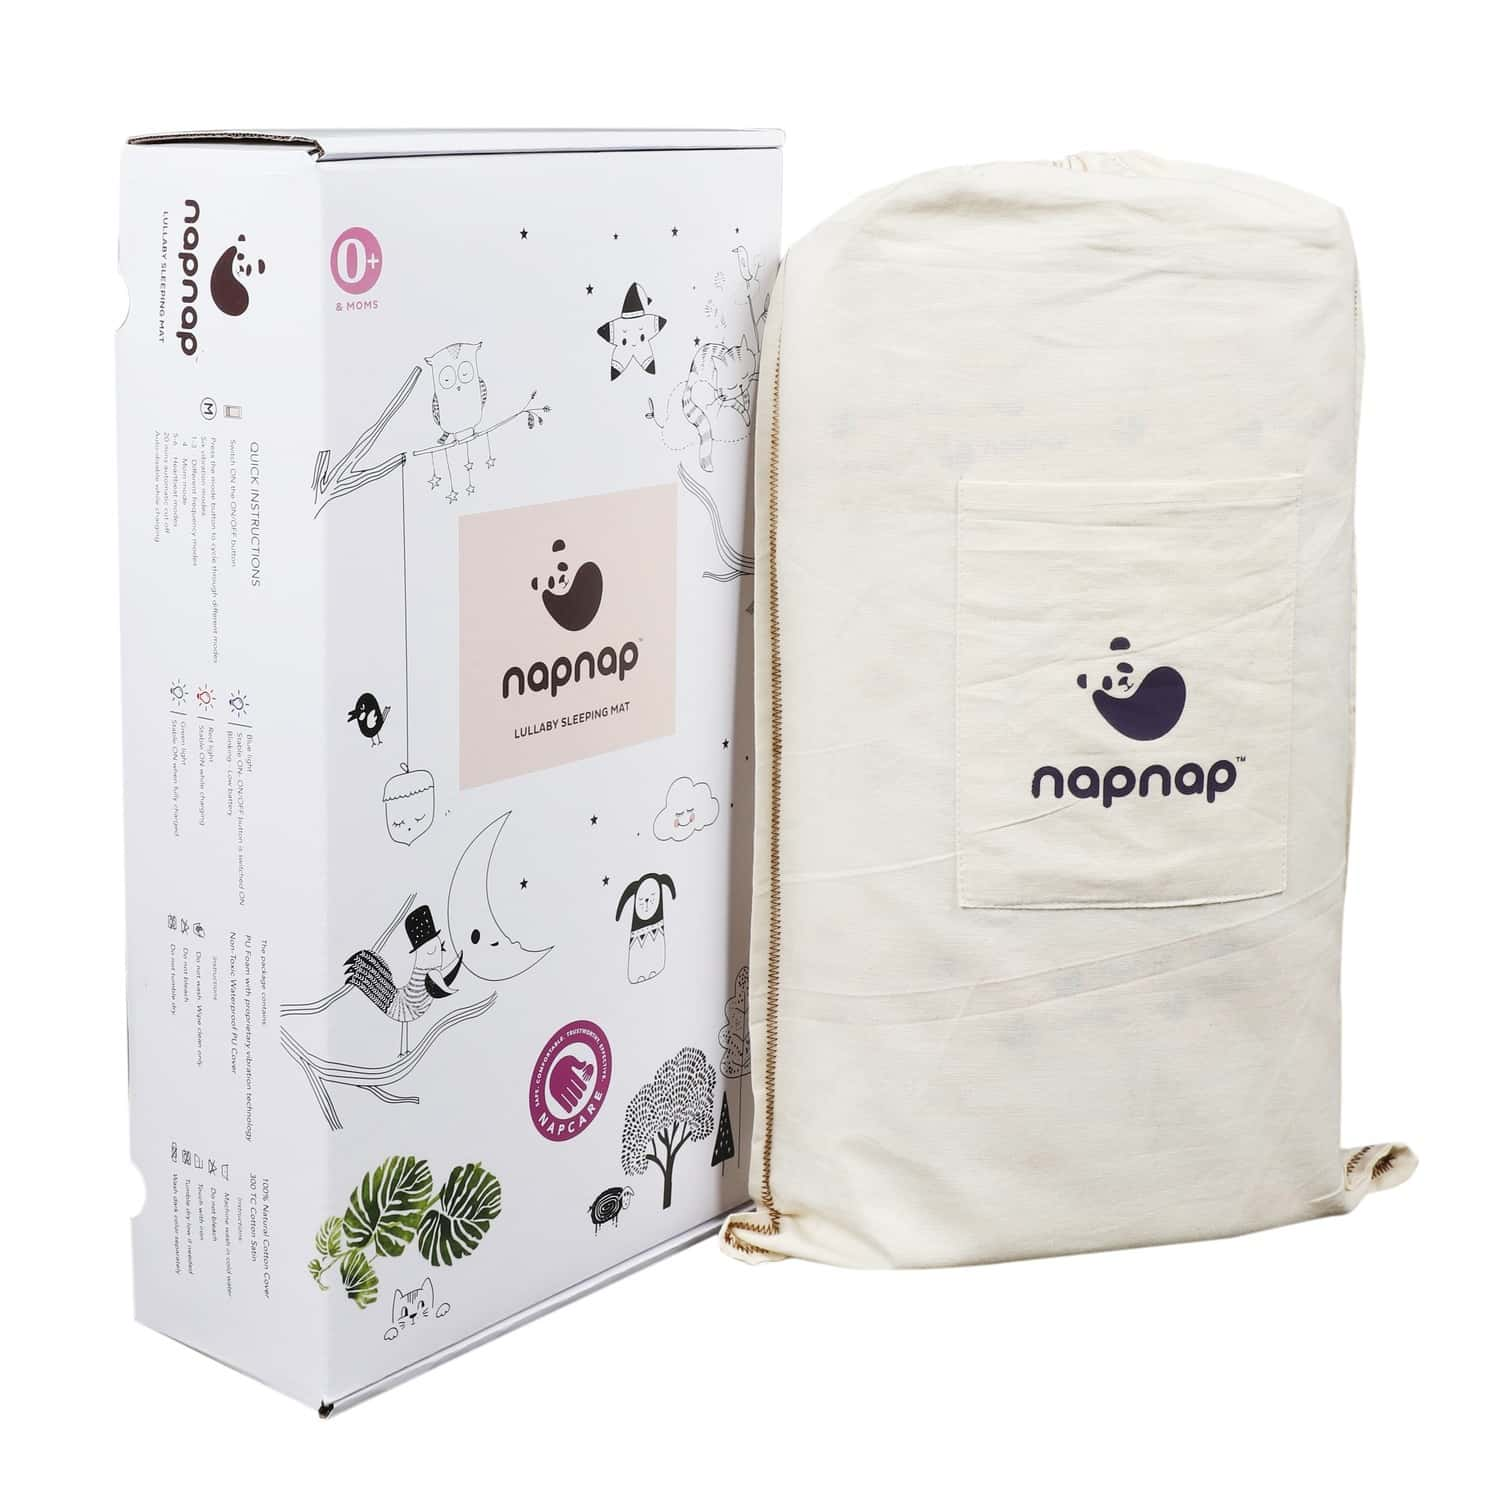 Napnap Portable Soothing Mat For New-borns And New Moms. - British White